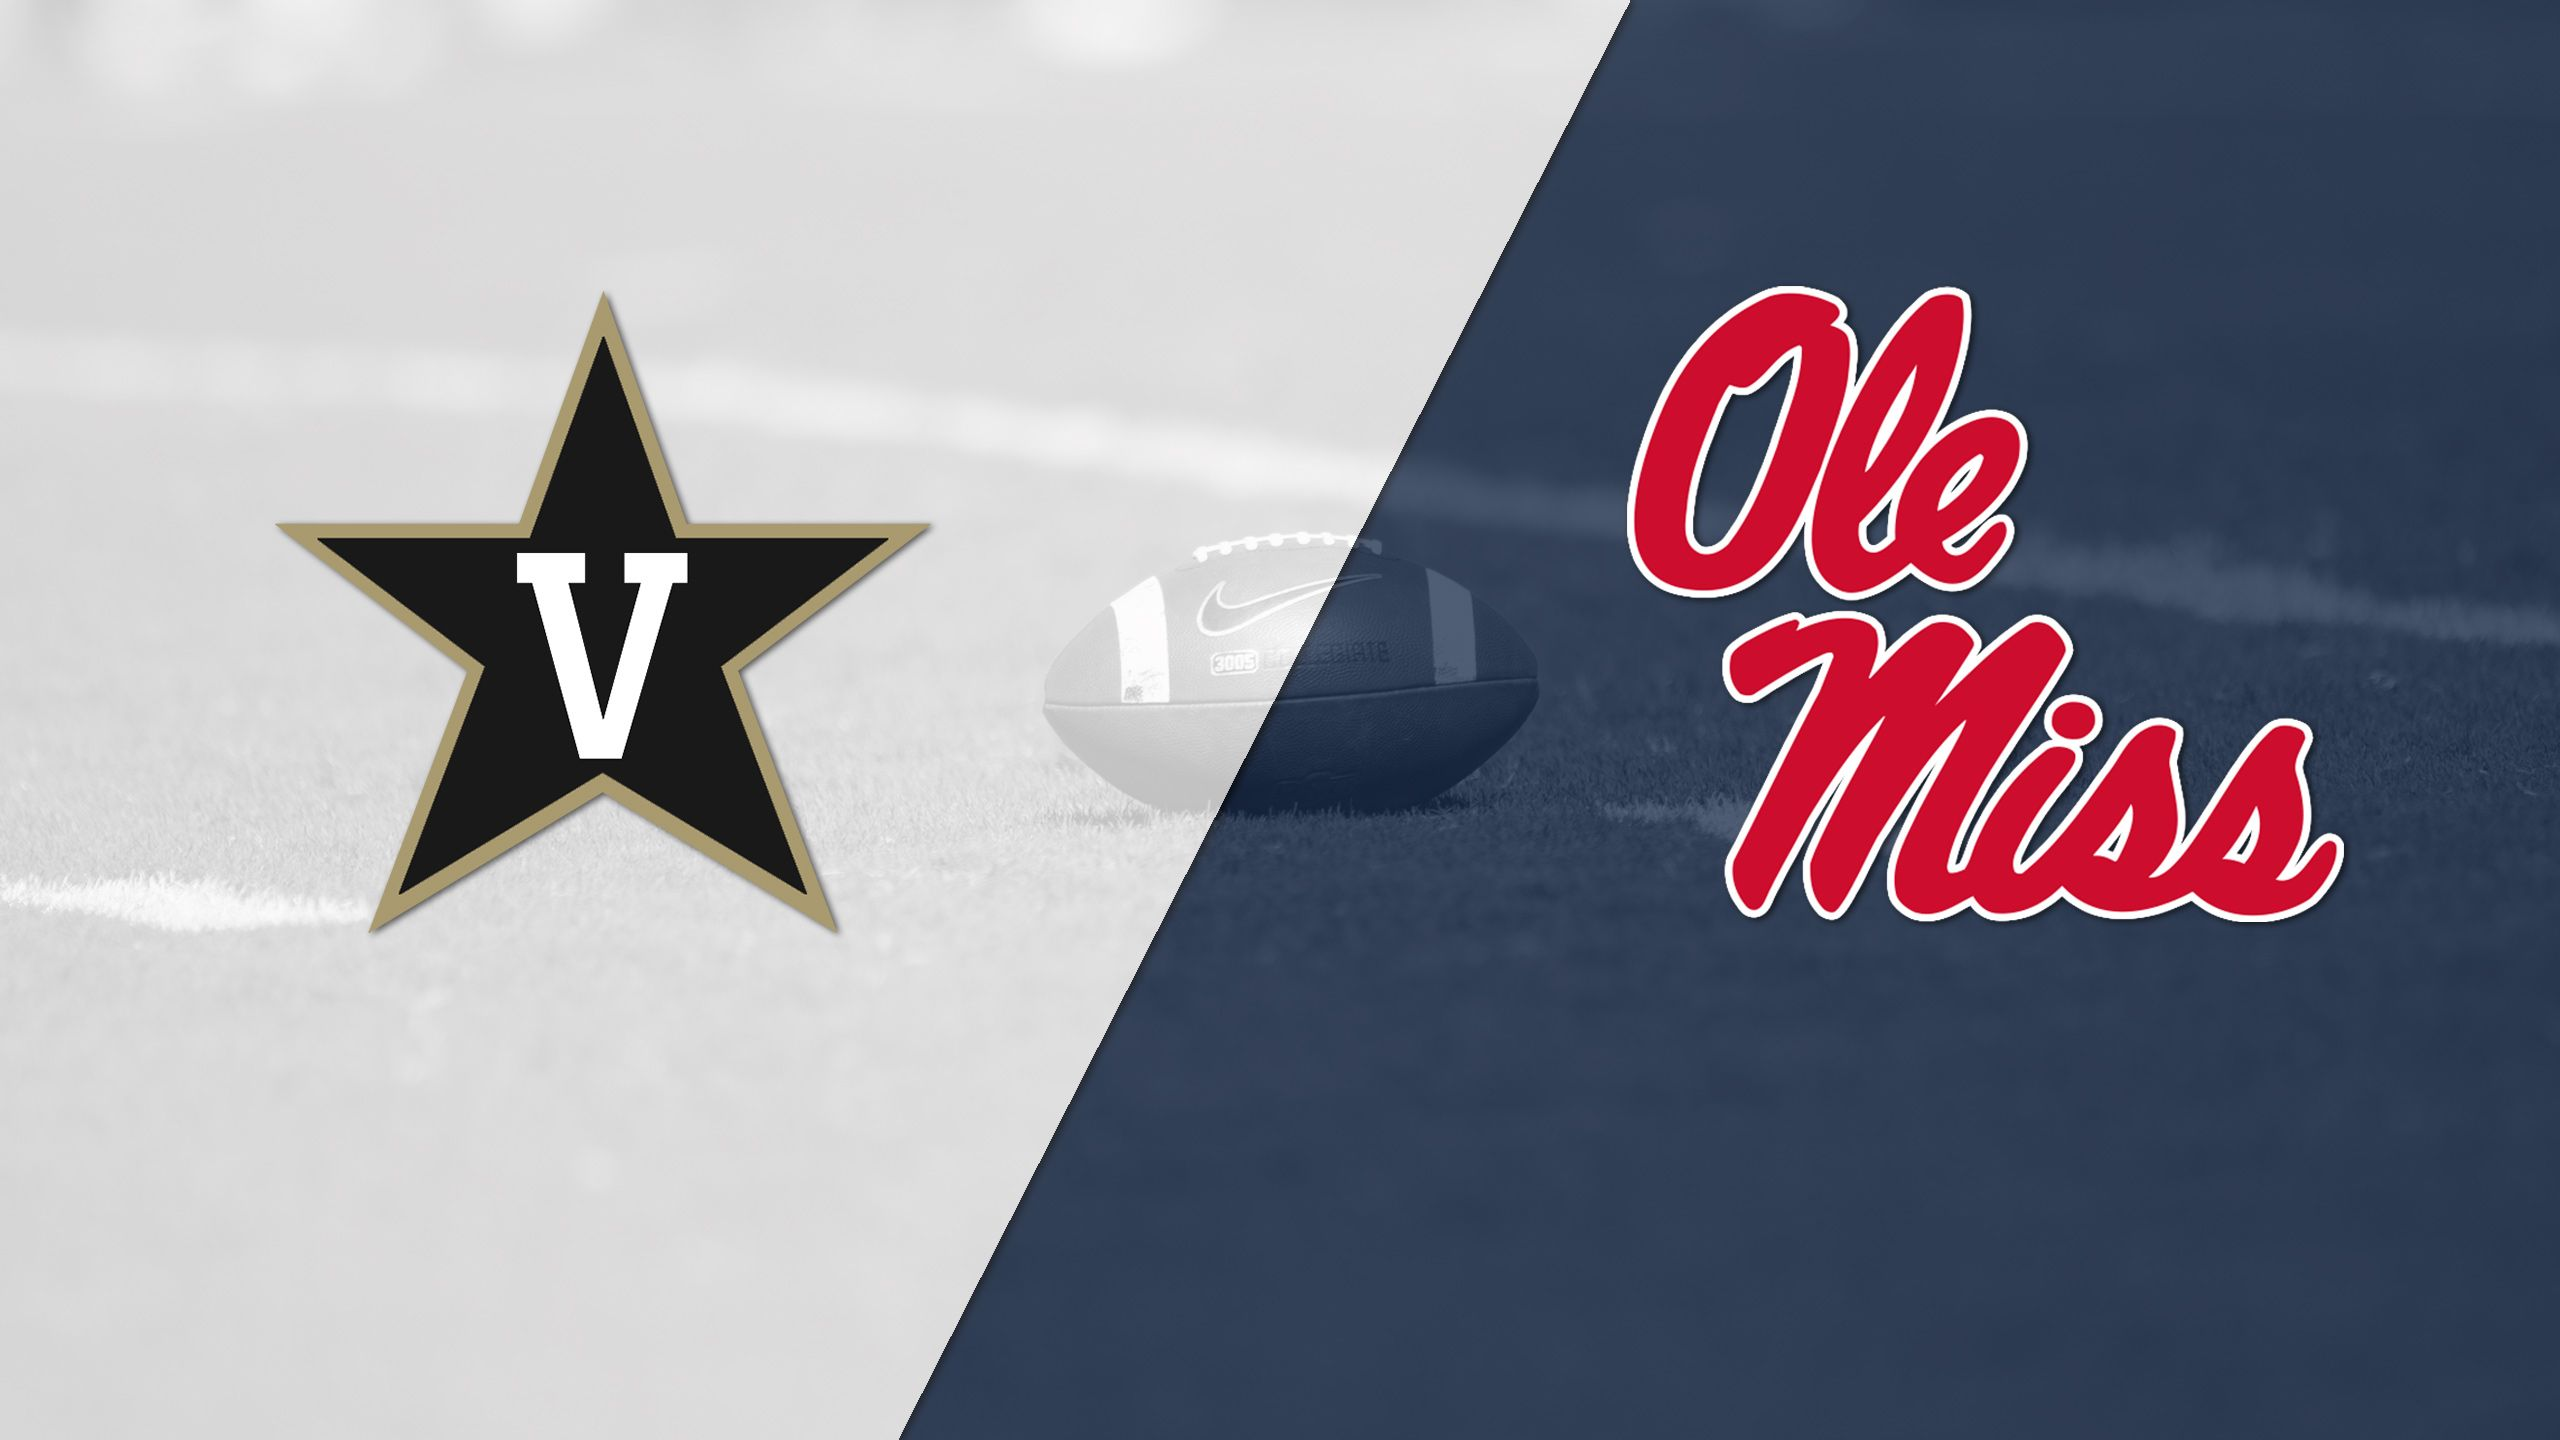 Vanderbilt vs. Ole Miss (Football)